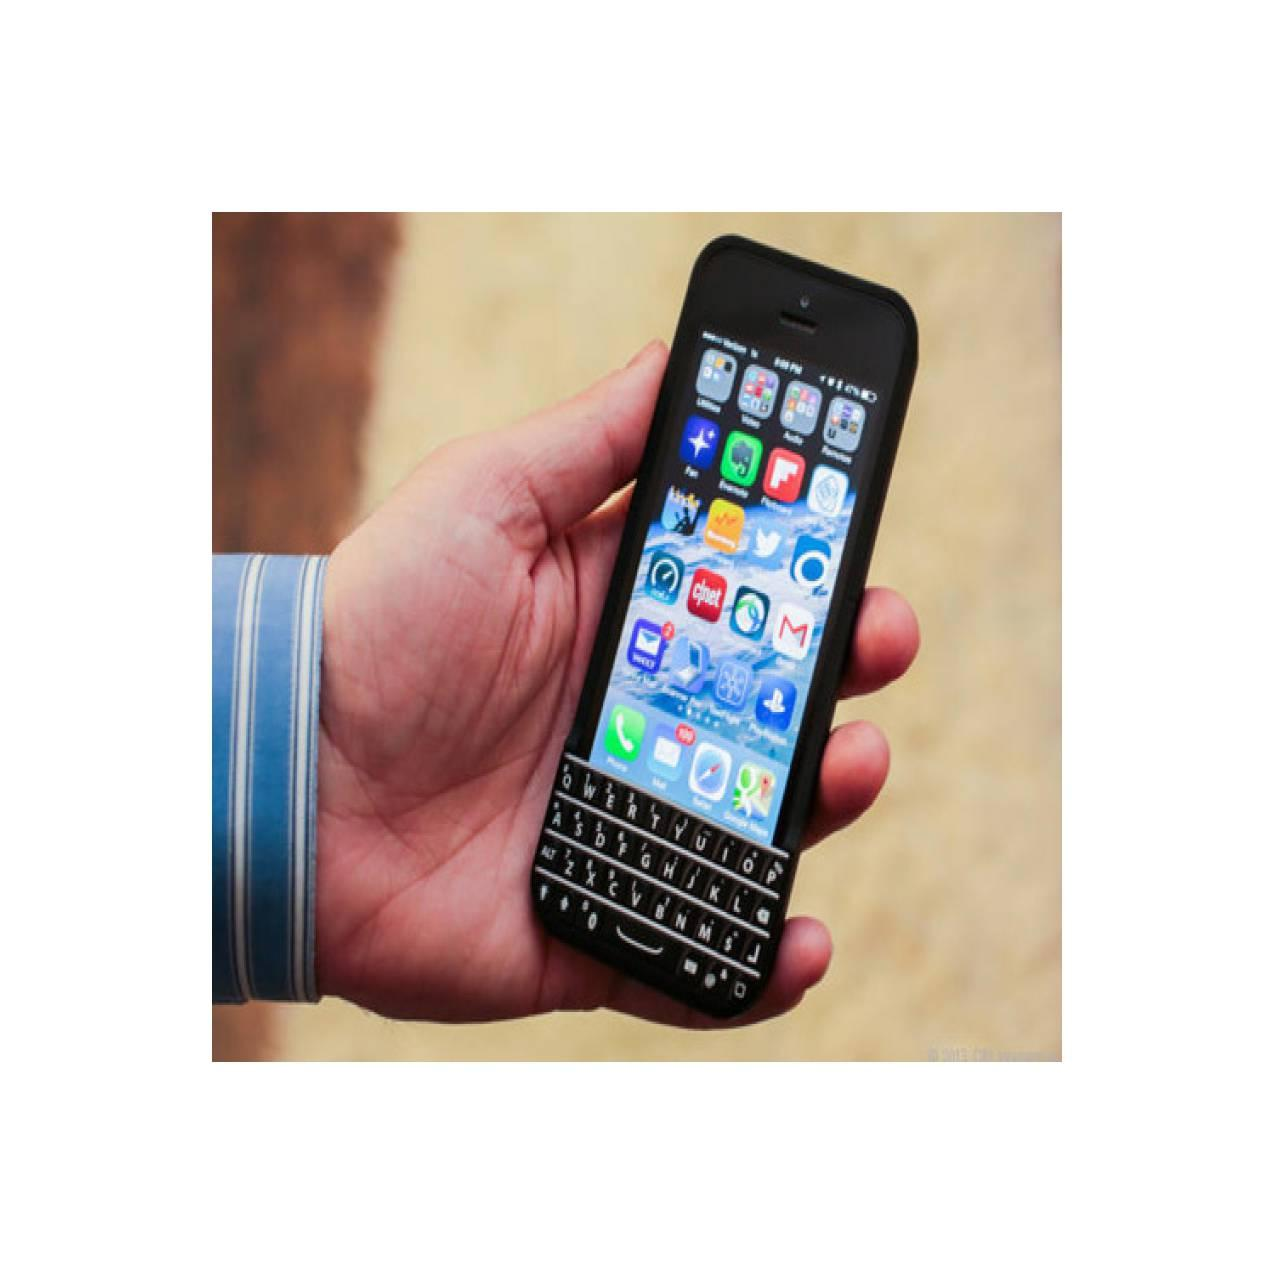 Typo QWERTY Blackberry Keyboard Bluetooth Case Casing iPhone 5 / 5s